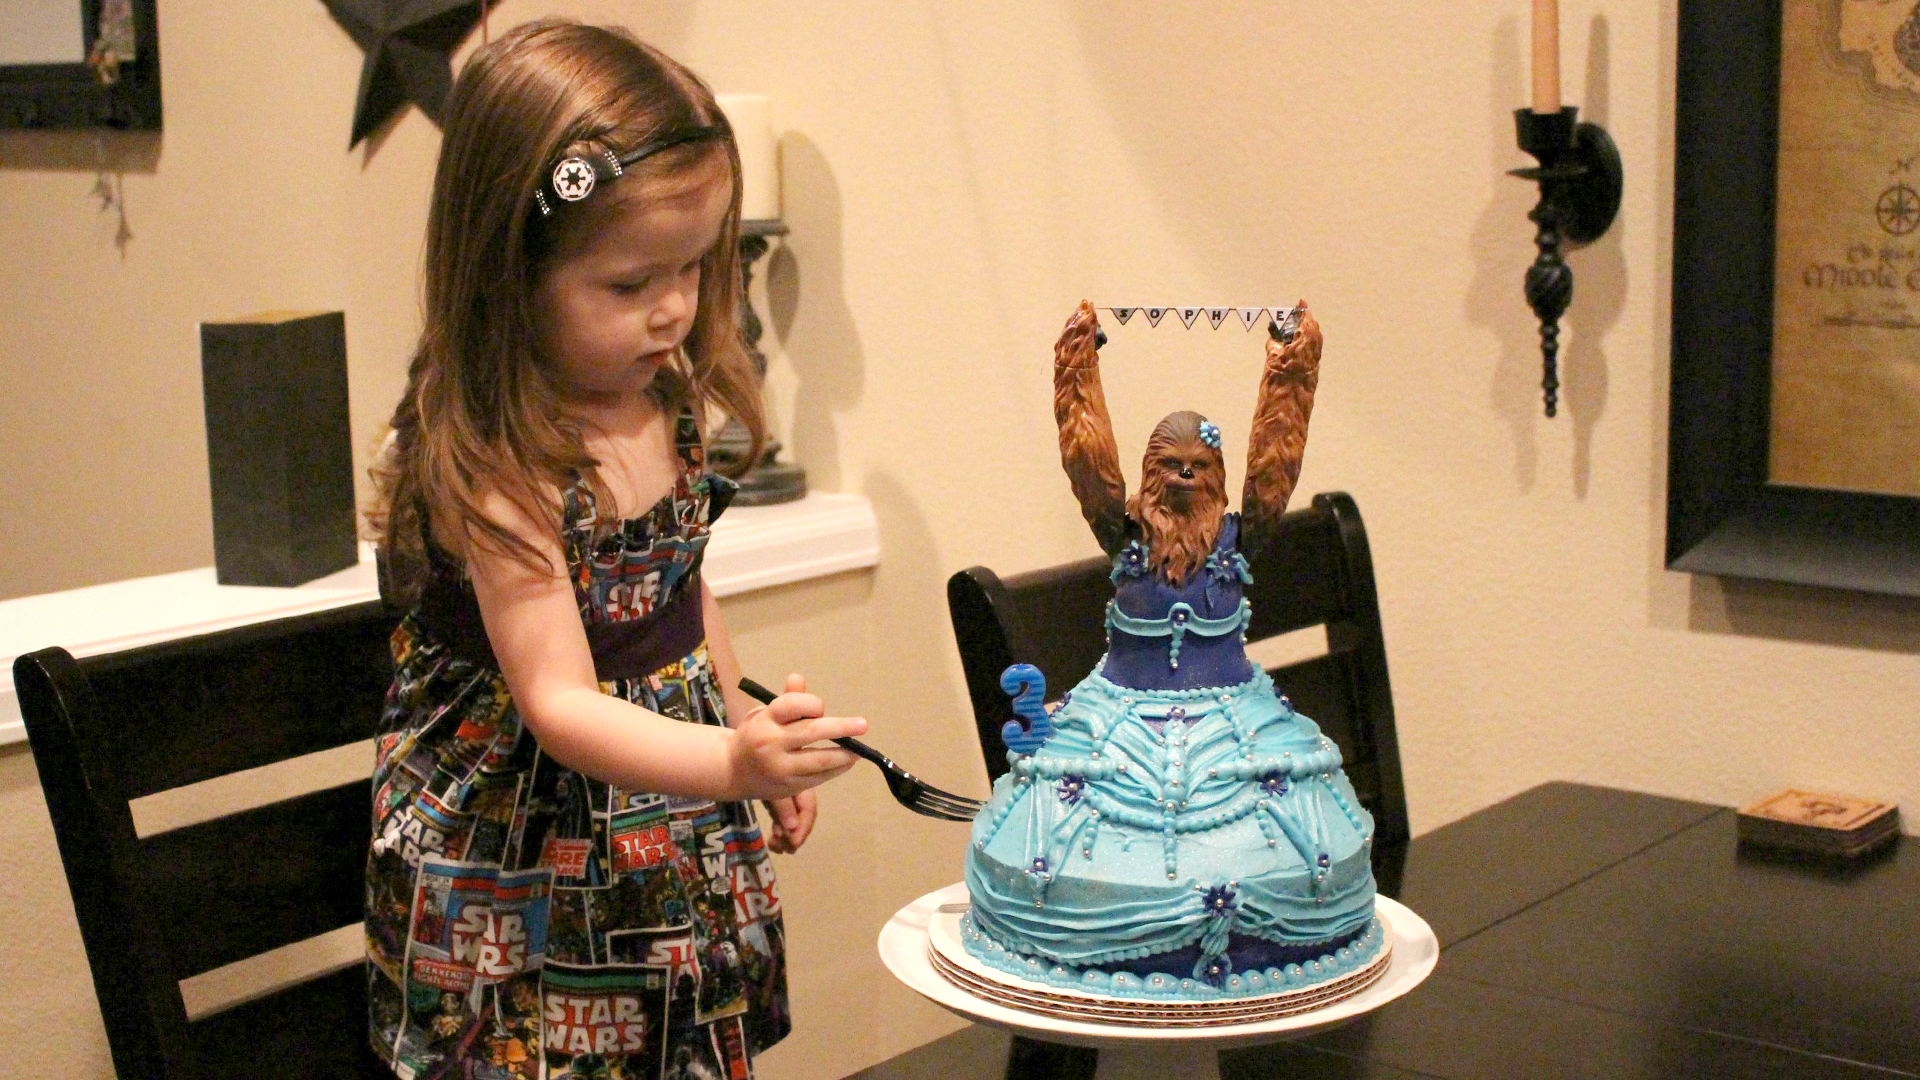 Princess Chewbacca 3 Year Old Celebrates Birthday With Amazing Star Wars Cake